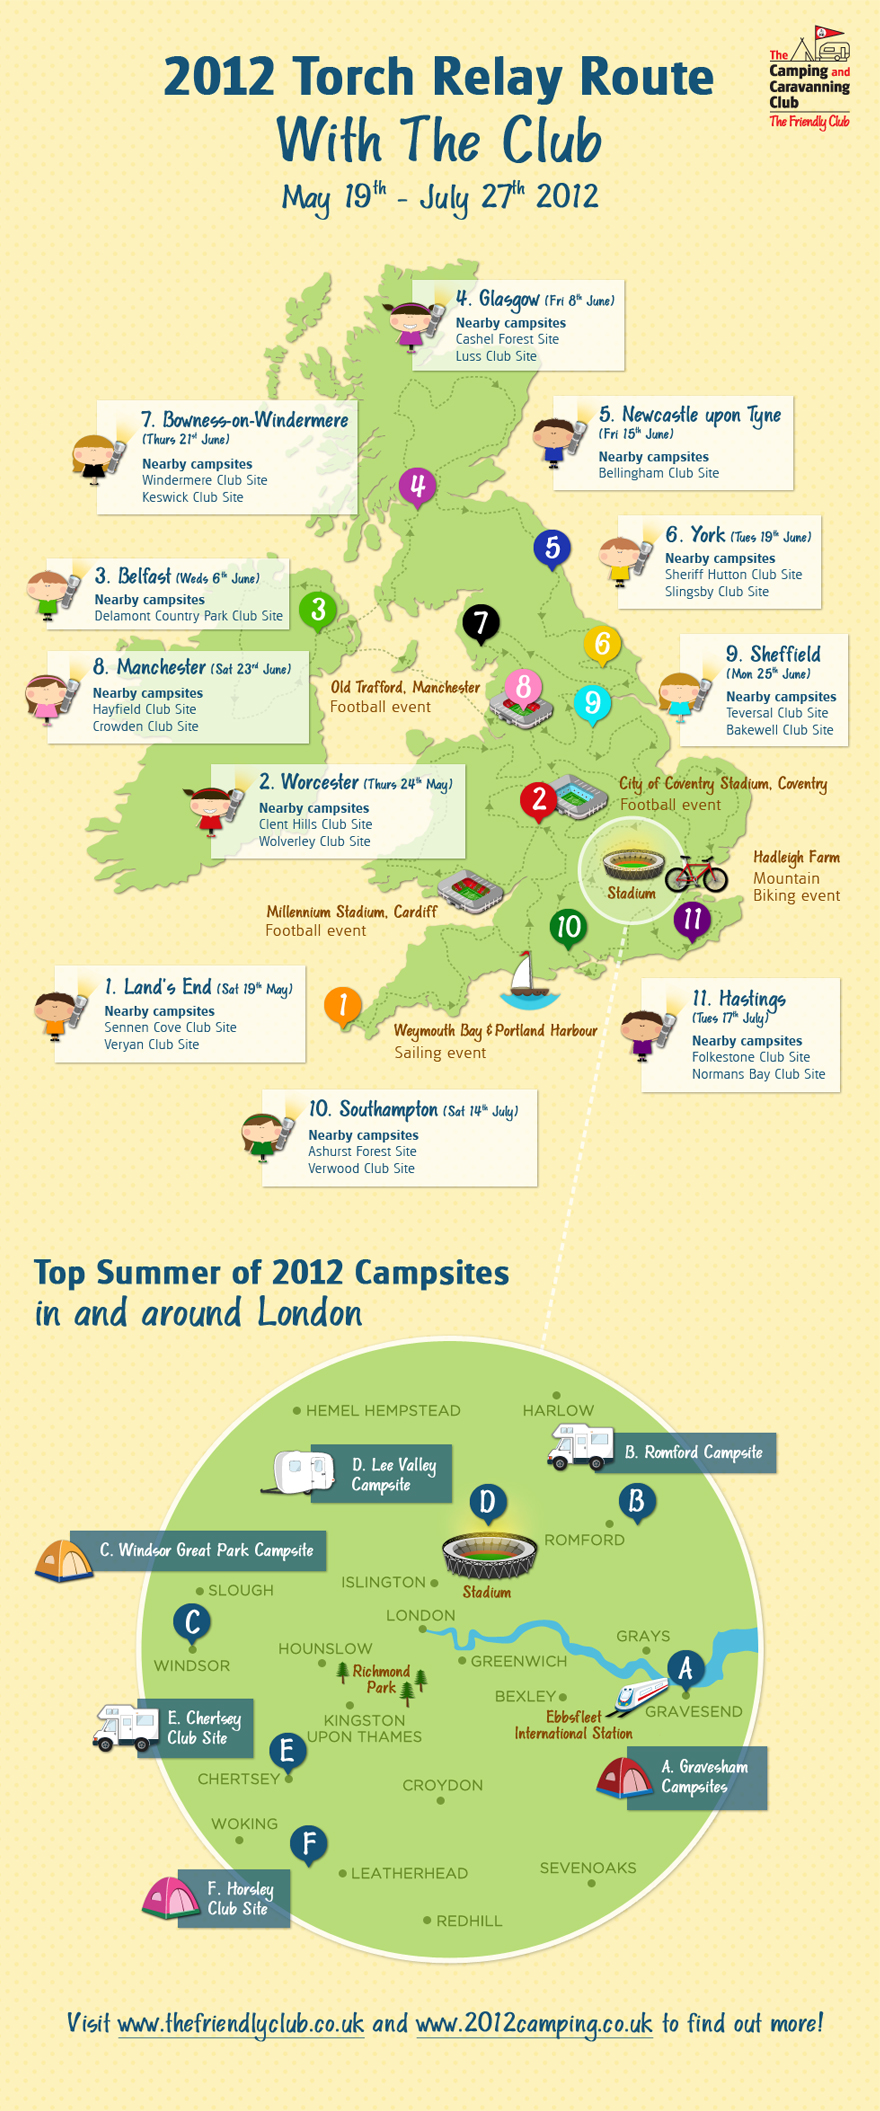 2012 torch relay route with the club